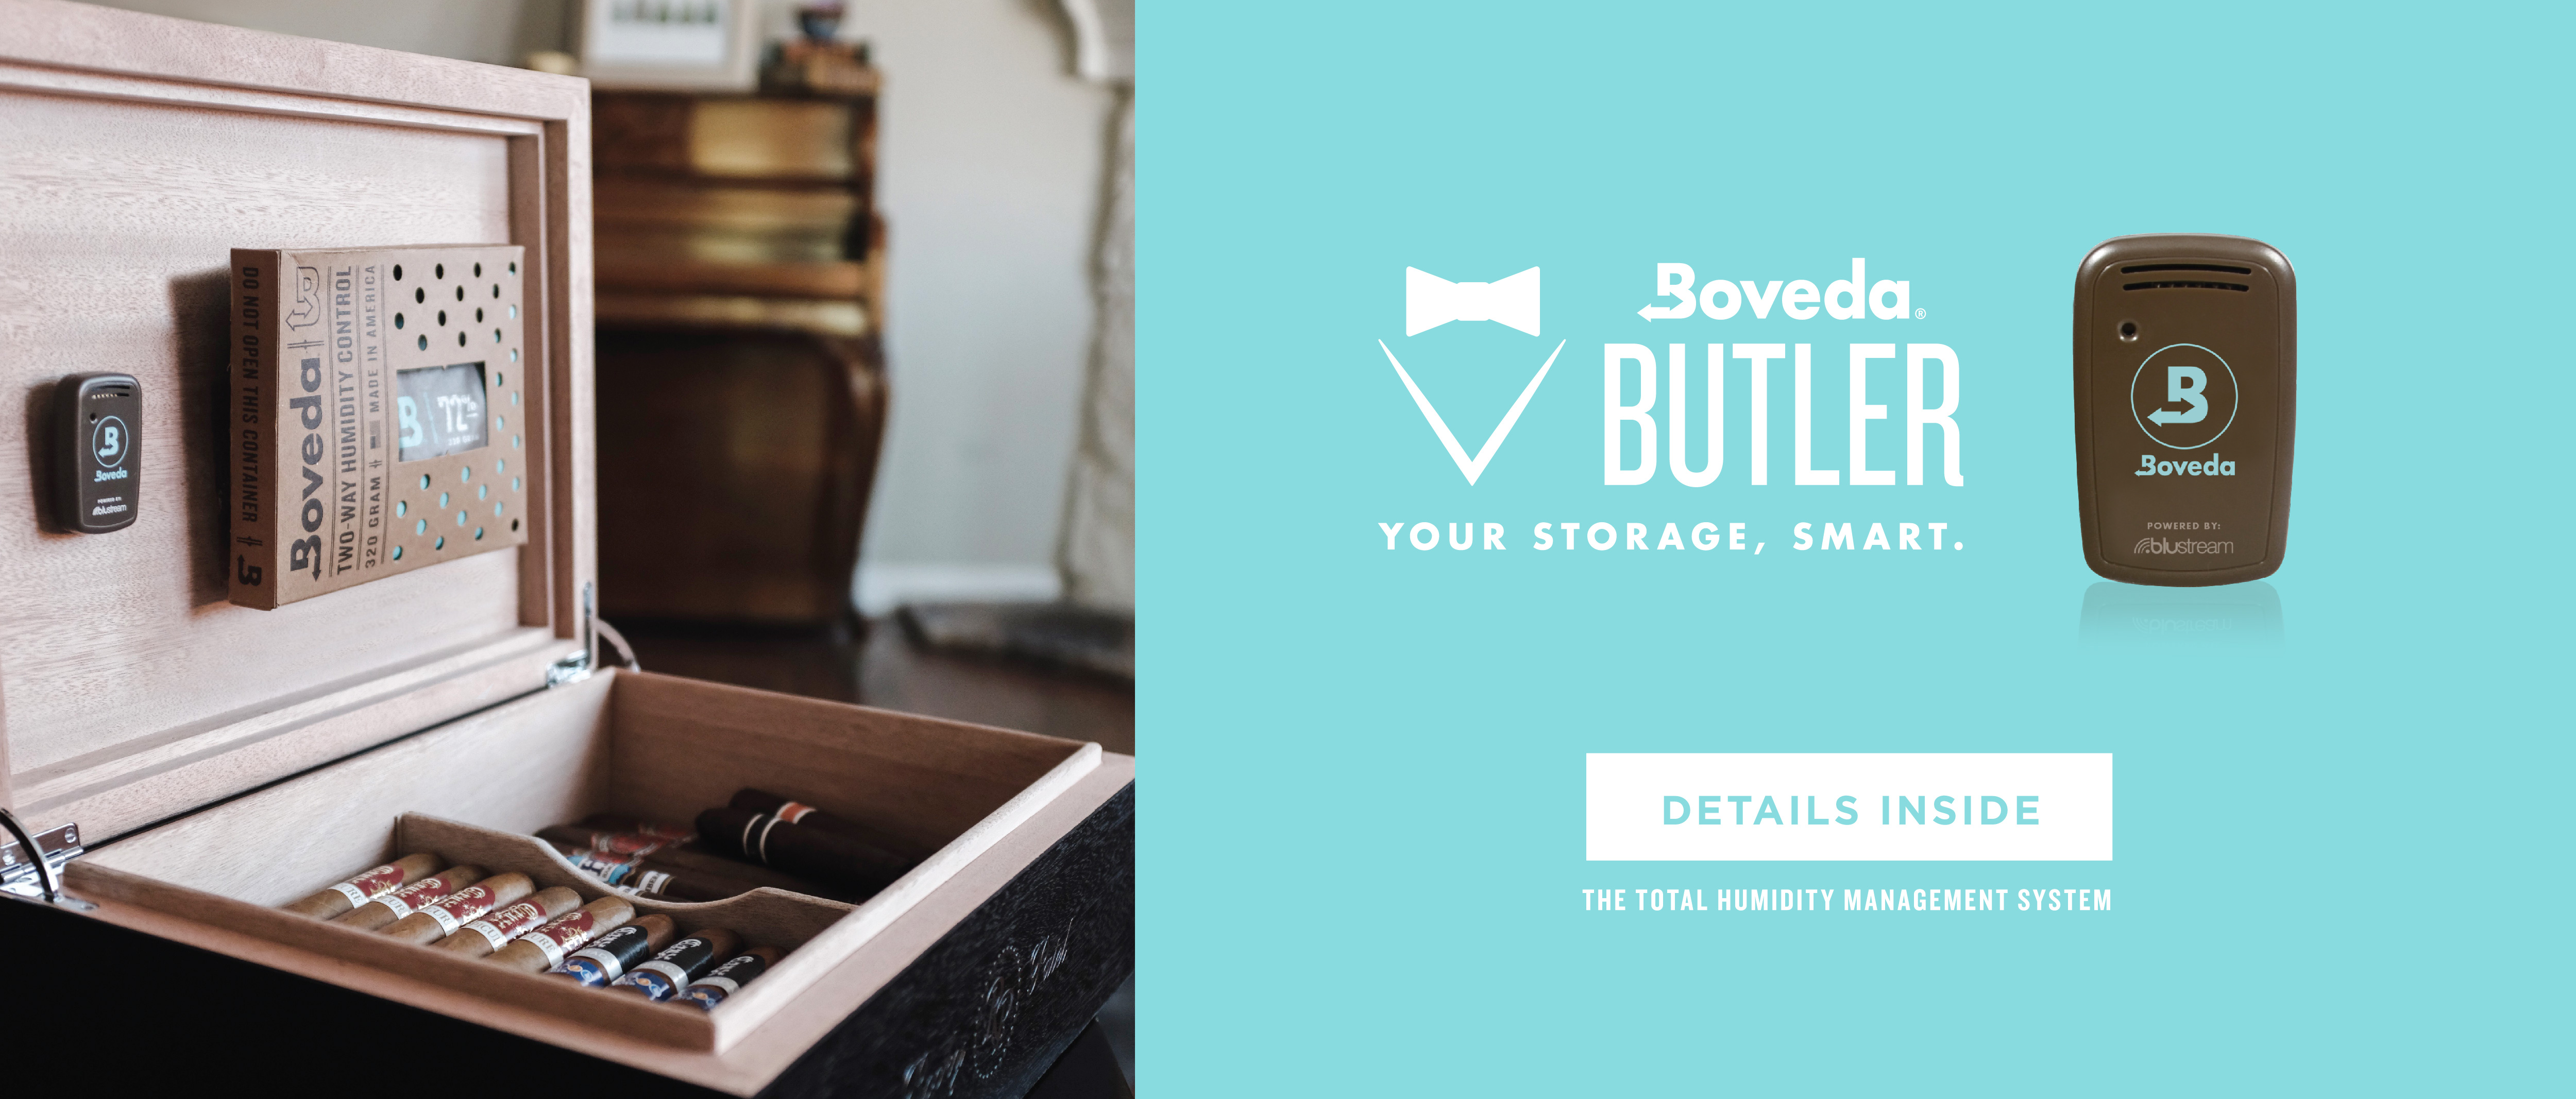 Monitor your valuables with the Boveda Butler.